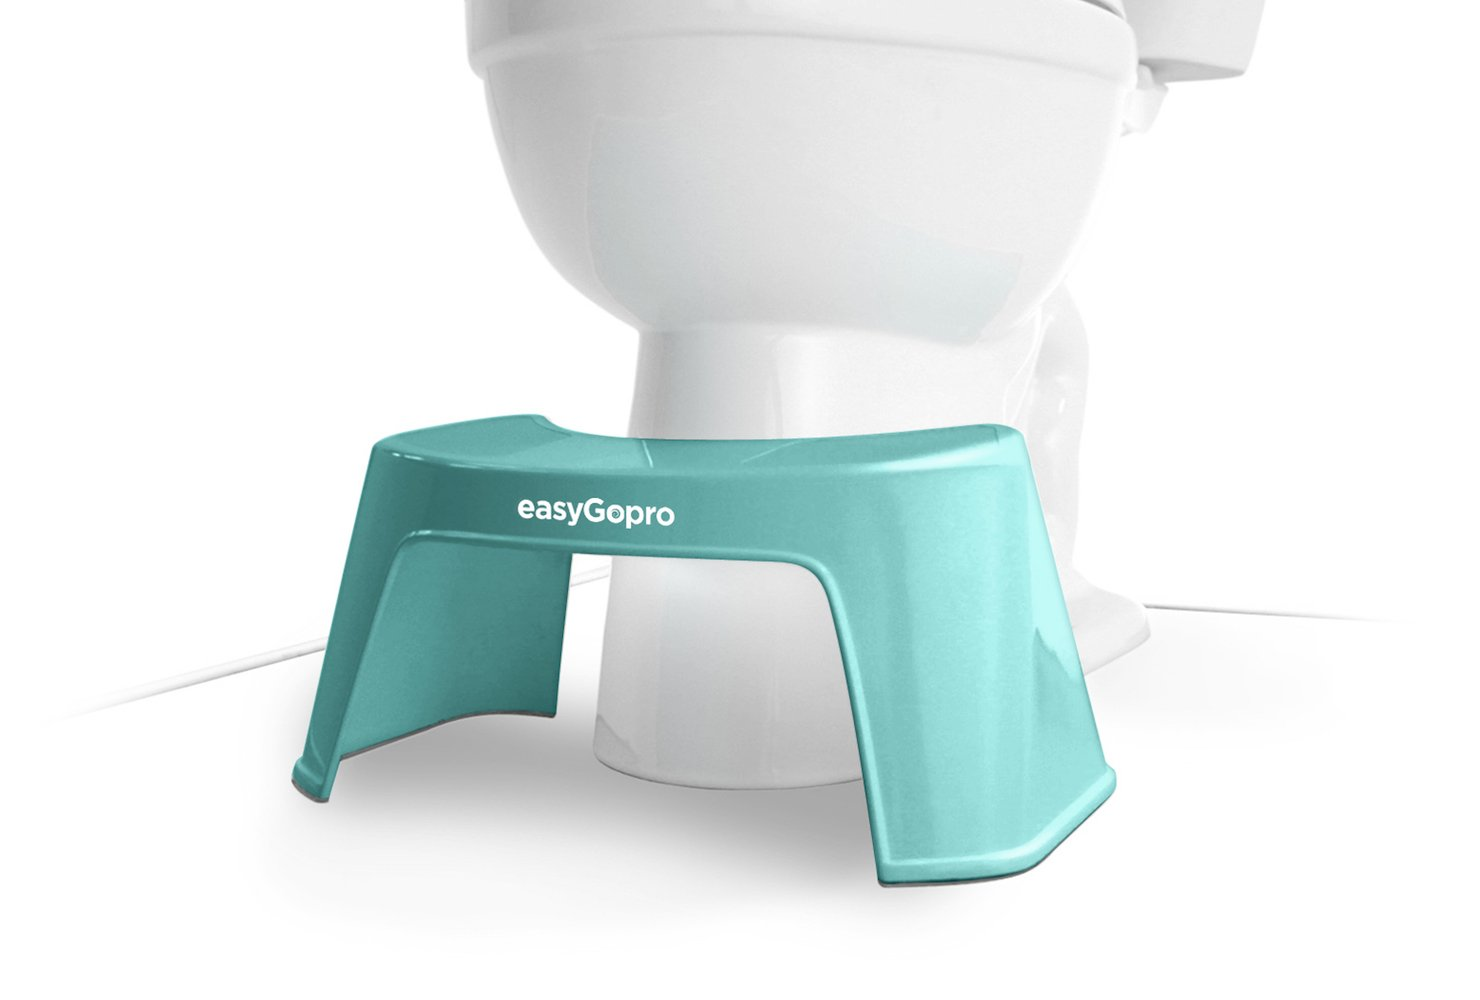 EasyGopro Go Time Just Got Easier 7.5'' Bathroom Squatty Toilet Stool and Pedicure Foot Rest | Compact Size | Blue by easyGopro